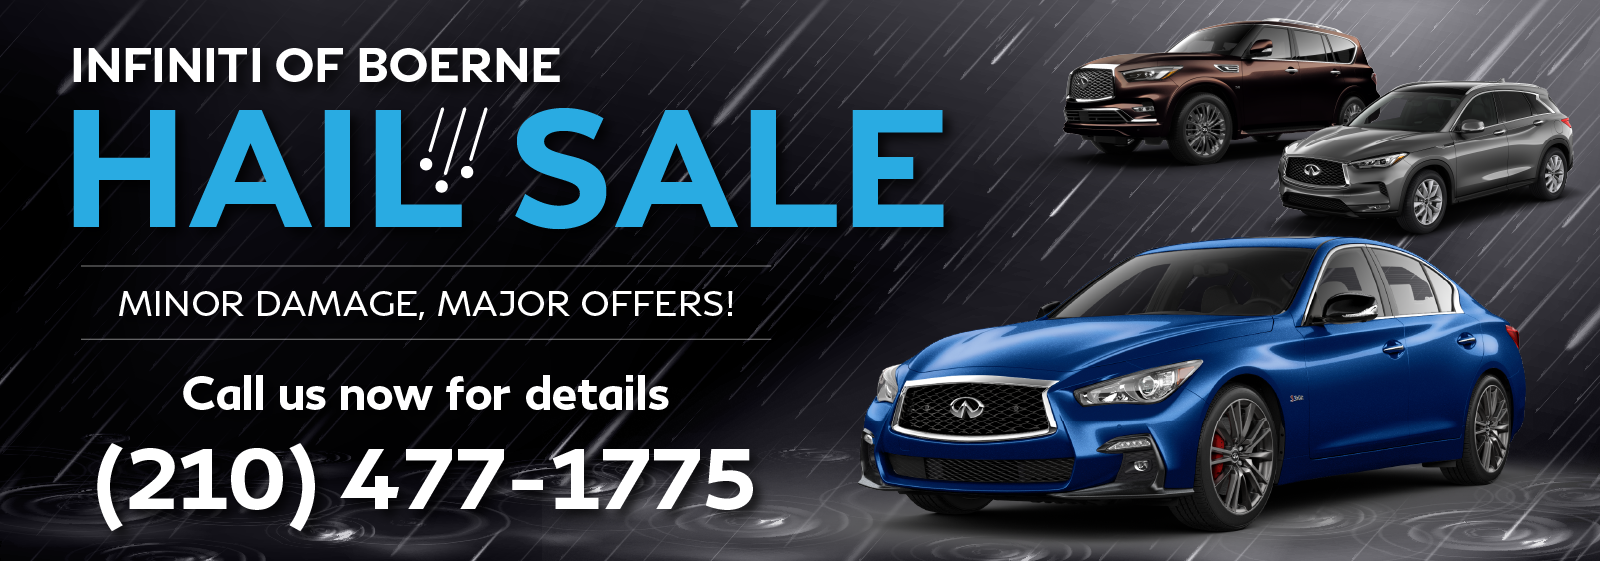 HAIL SALE! Call us at (210) 477-1775 for details.